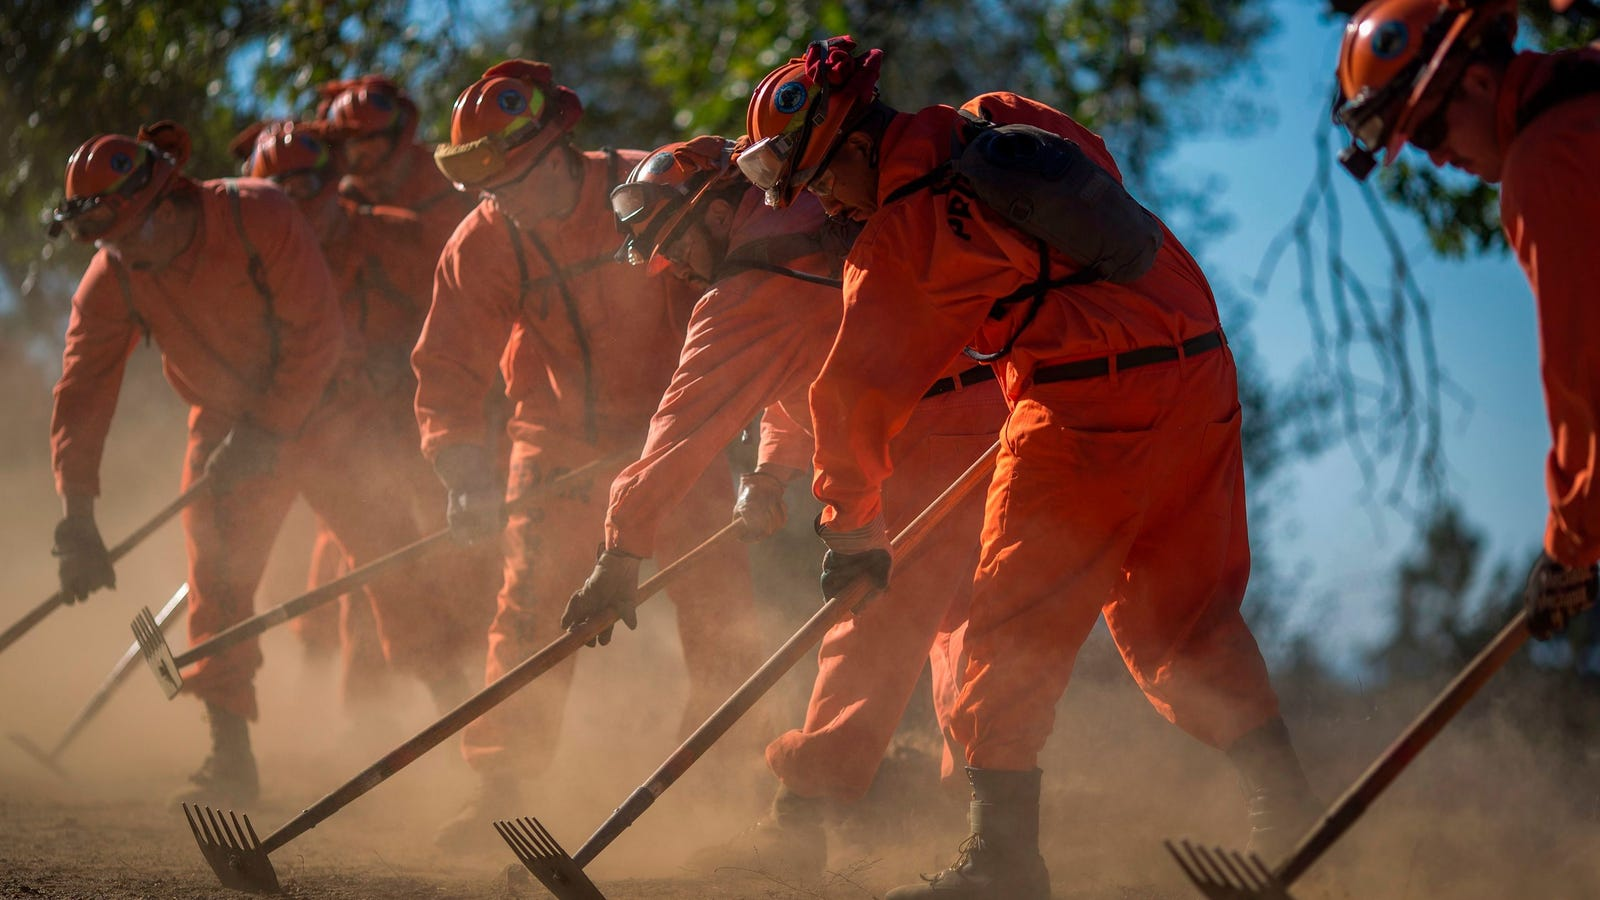 California Is Blaming Prison Reform for Incarcerated Fire Fighting Labor Shortage